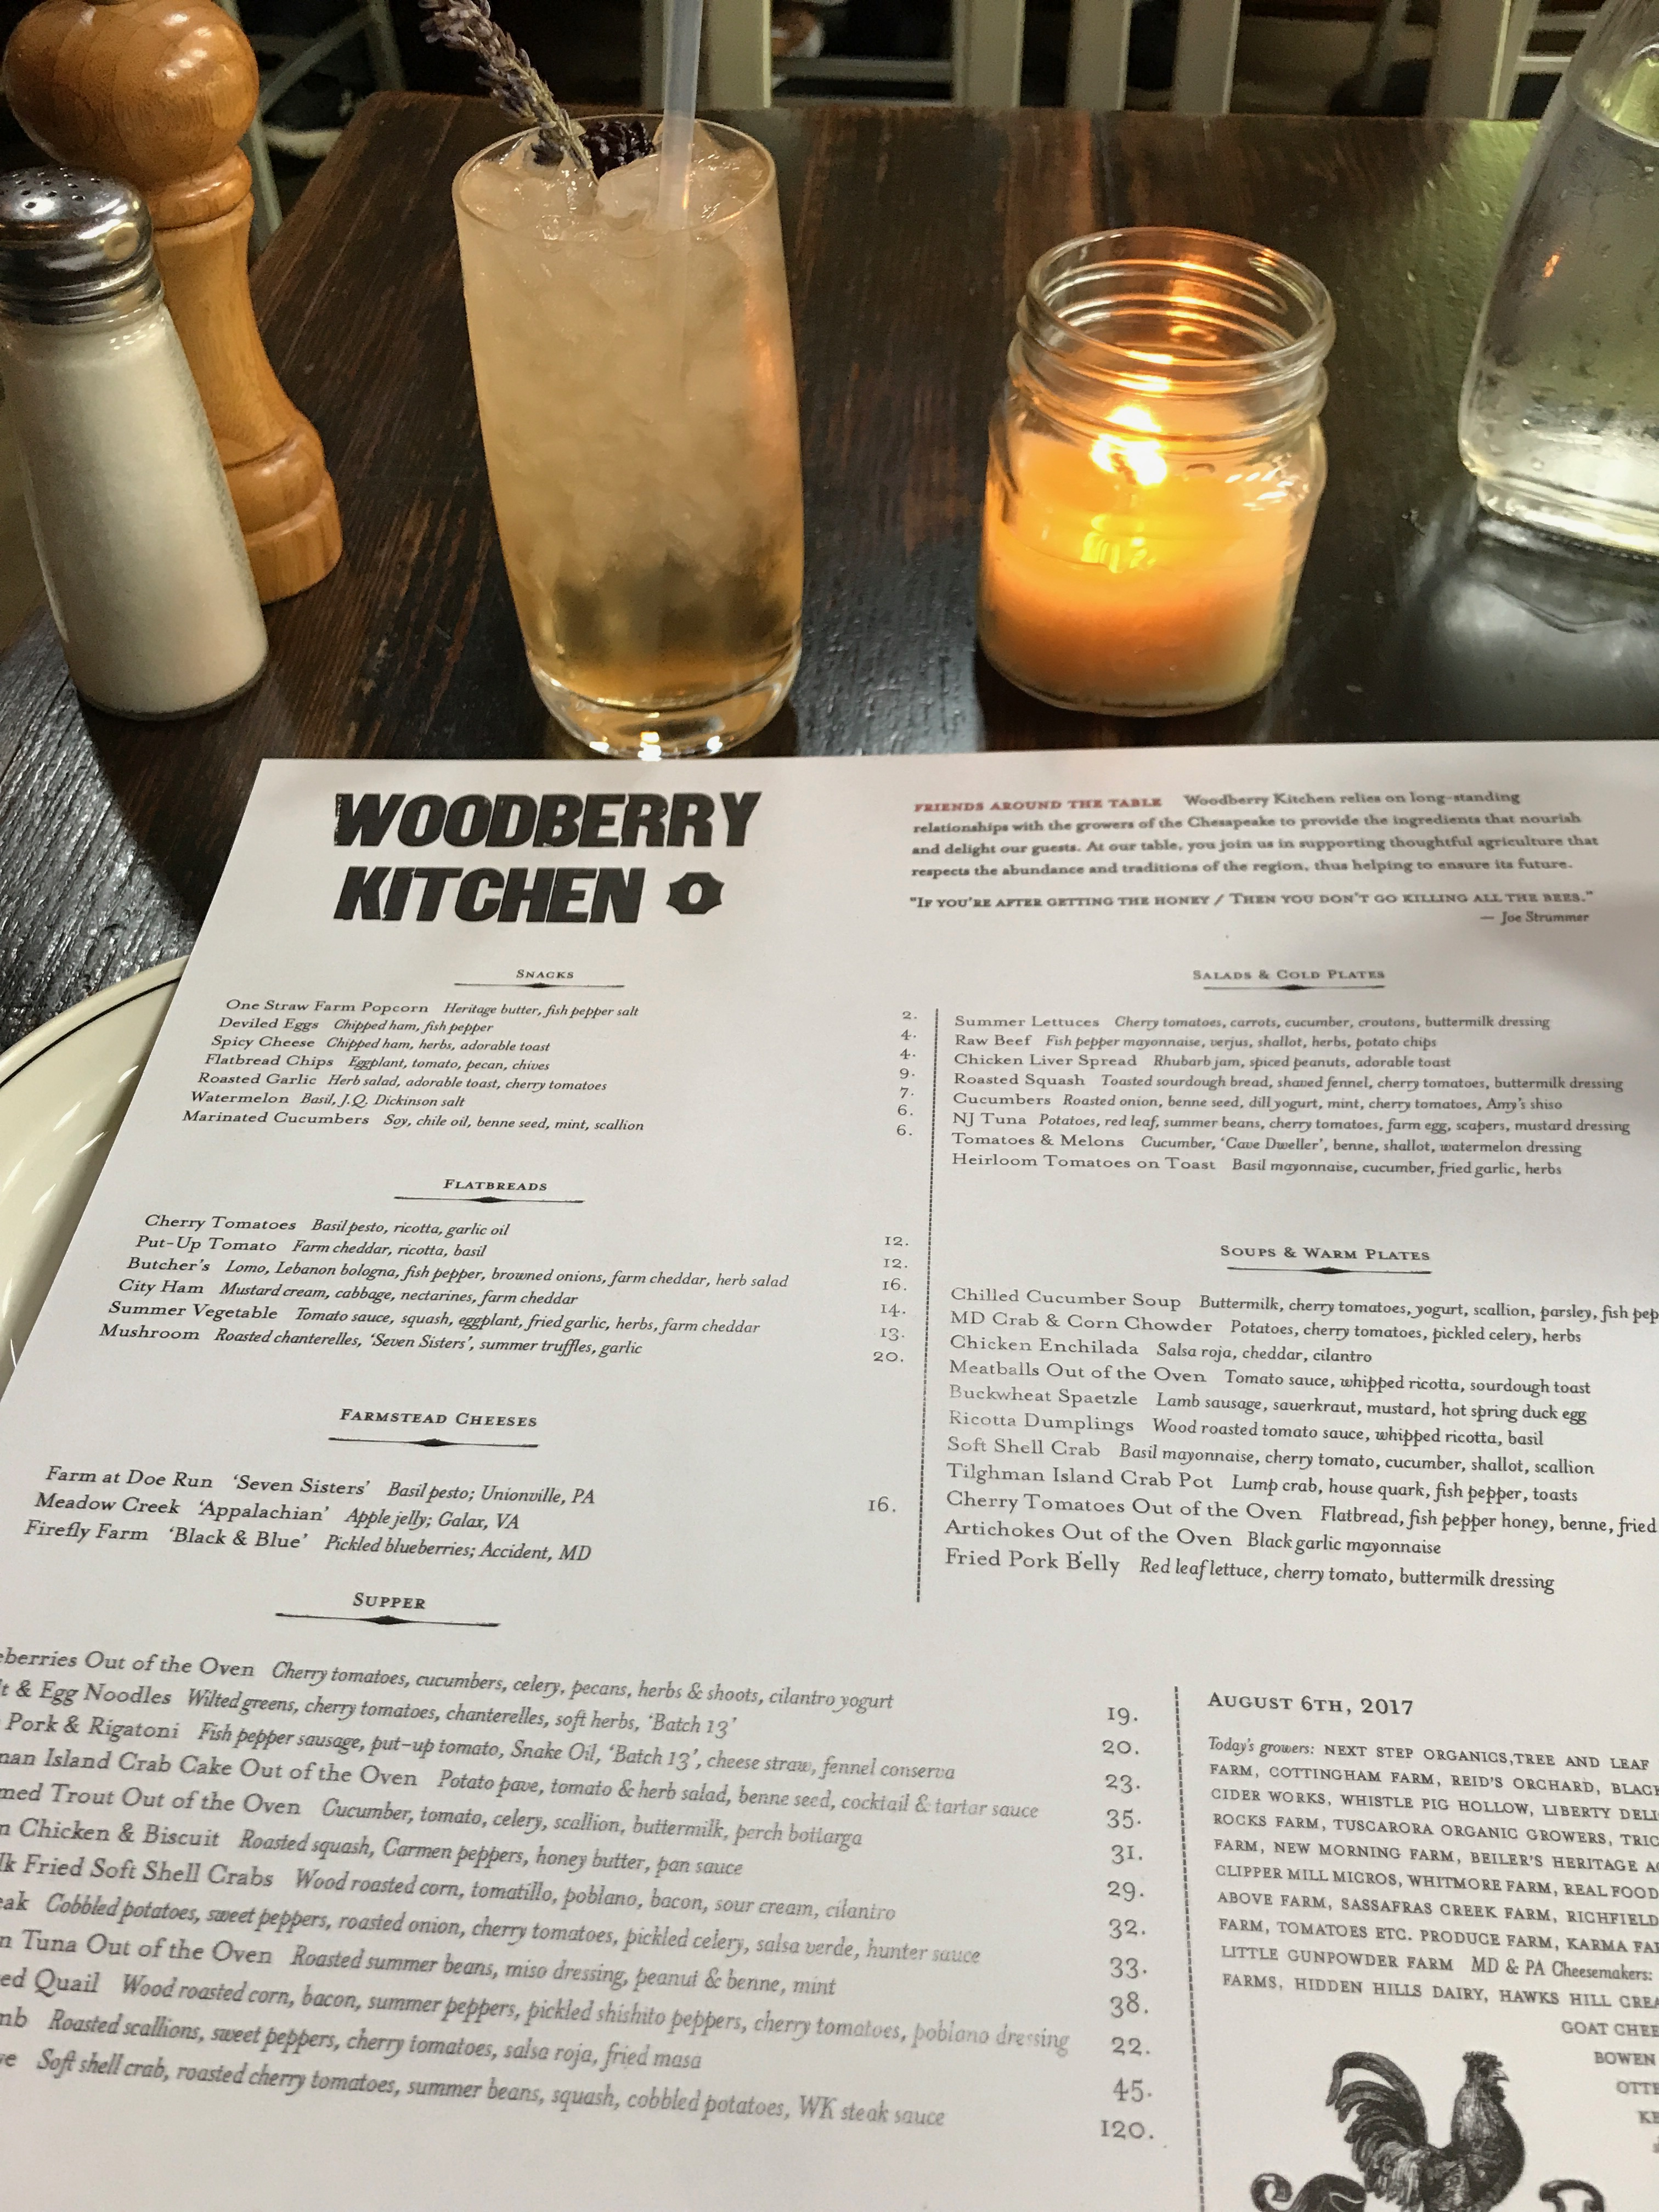 Woodberry Kitchen Photos – Shivers Attacks Everything